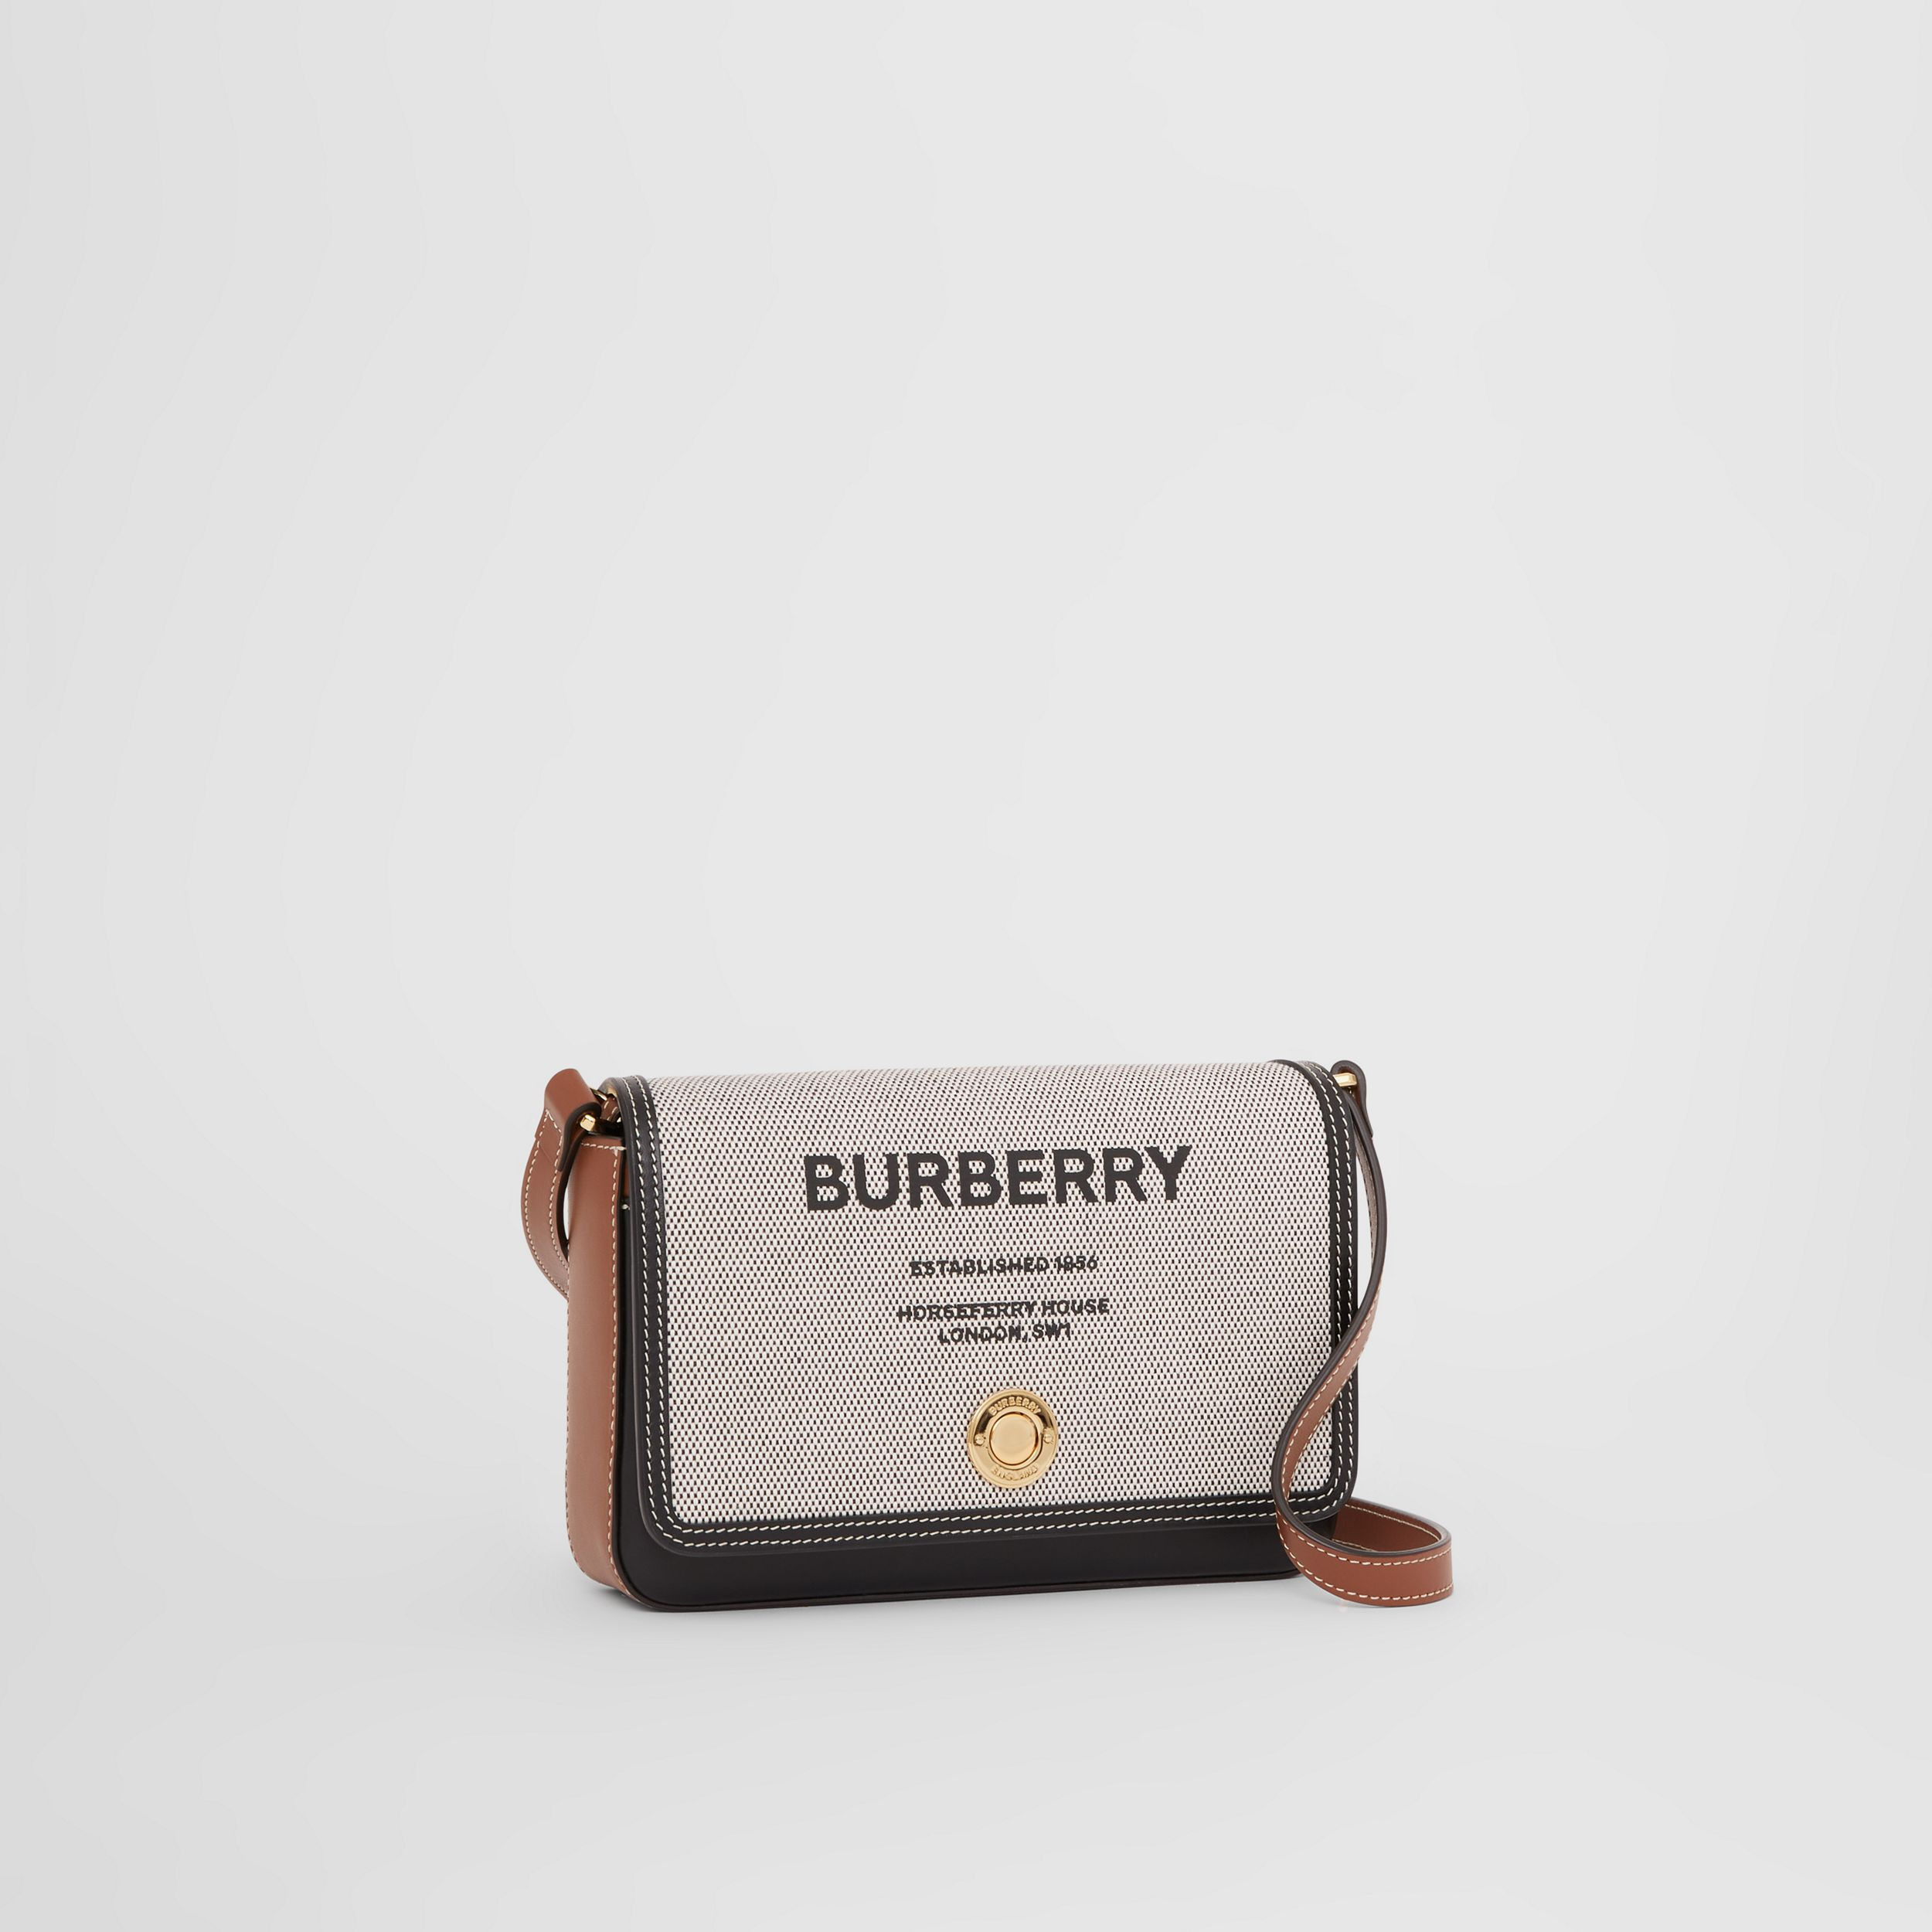 Horseferry Print Canvas and Leather Crossbody Bag in Black/tan - Women | Burberry - 4